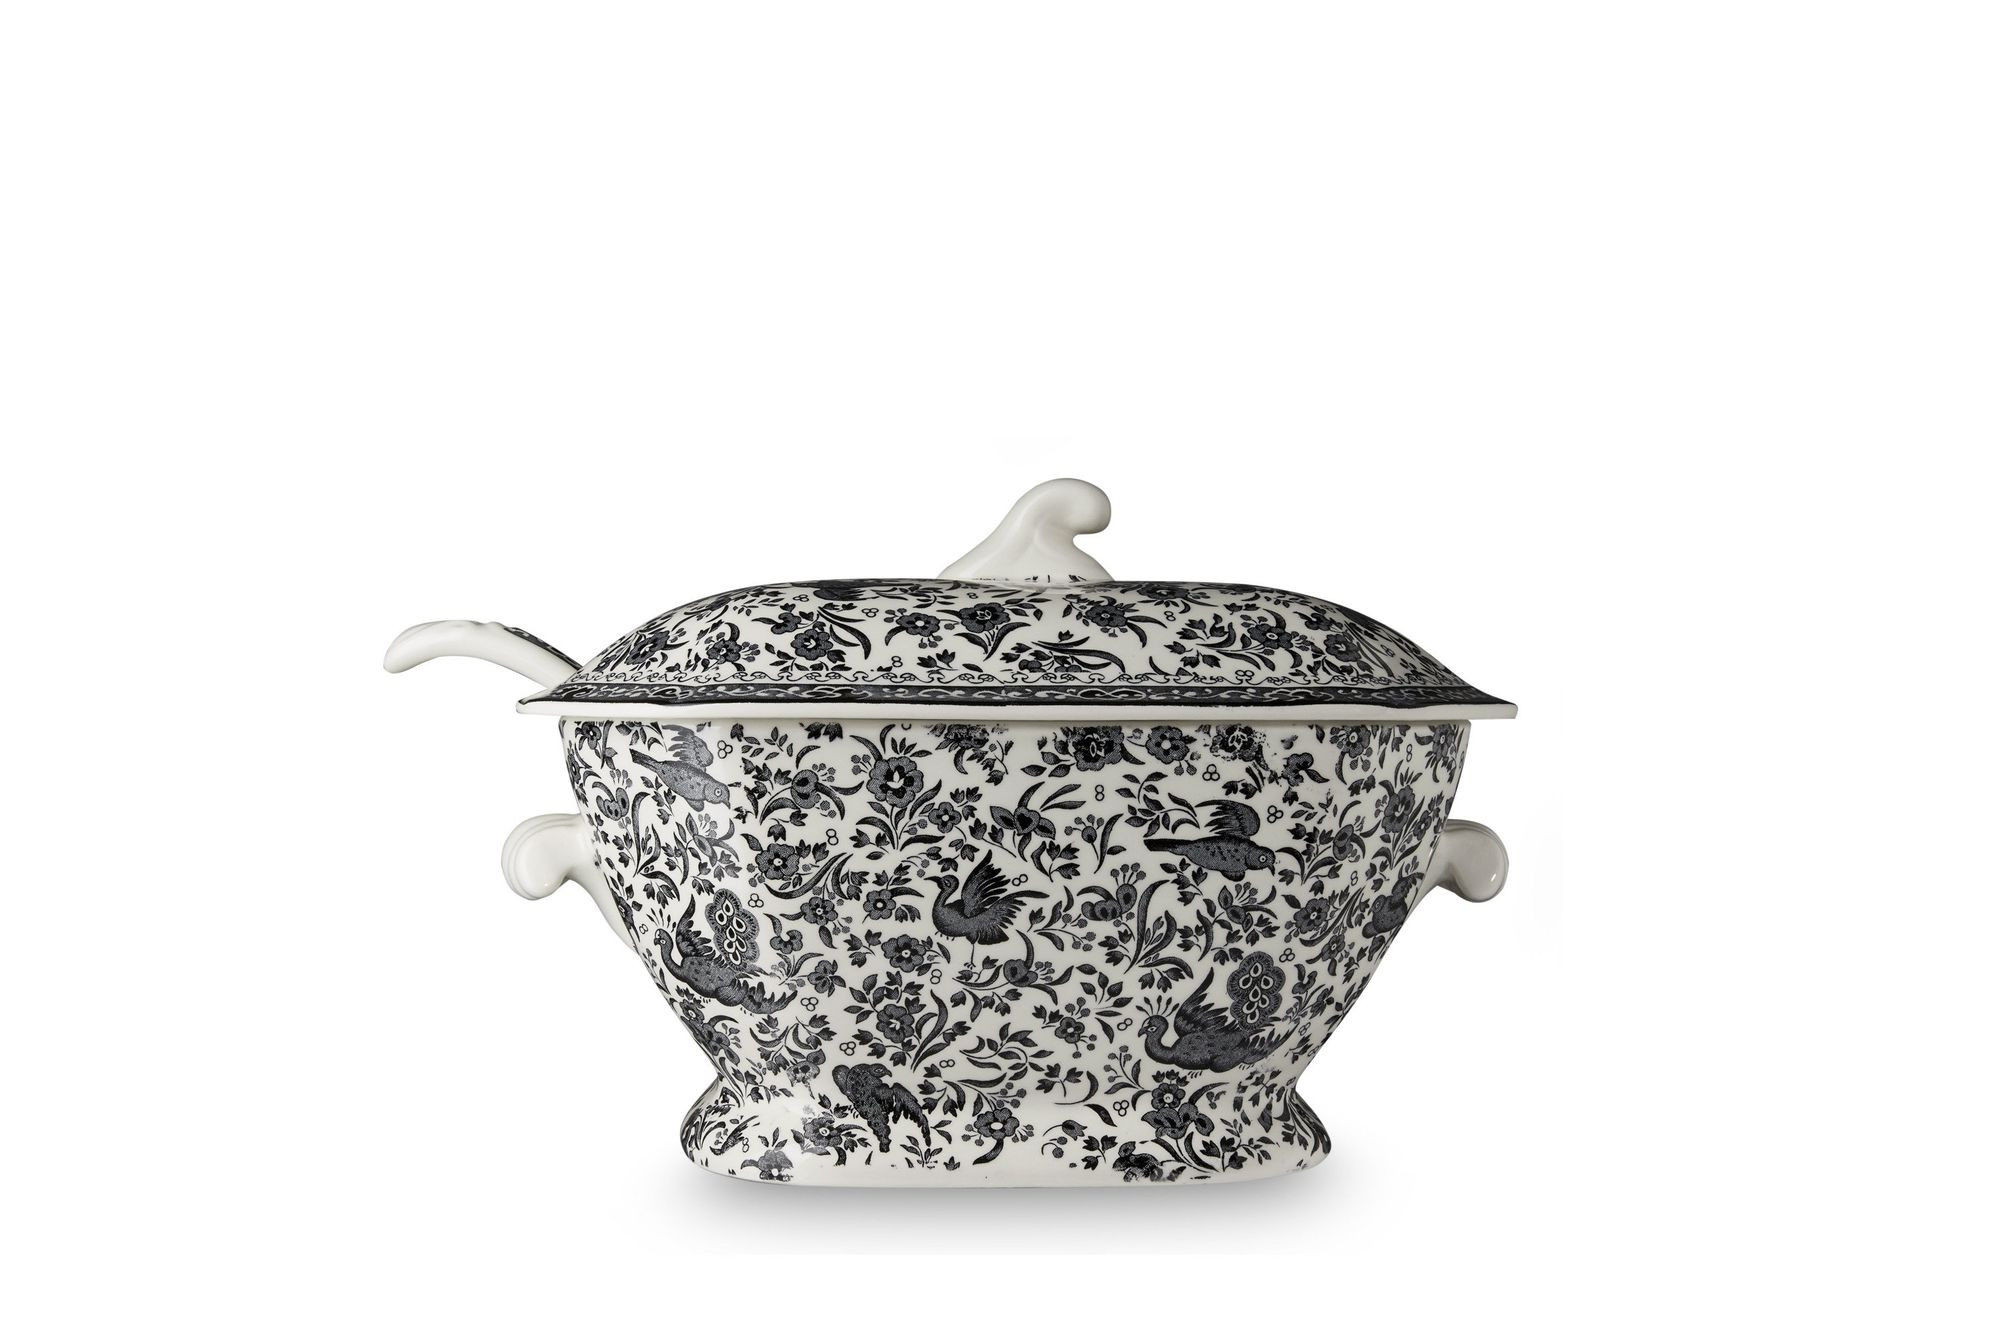 Burleigh Black Regal Peacock Soup Tureen + Lid thumb 1